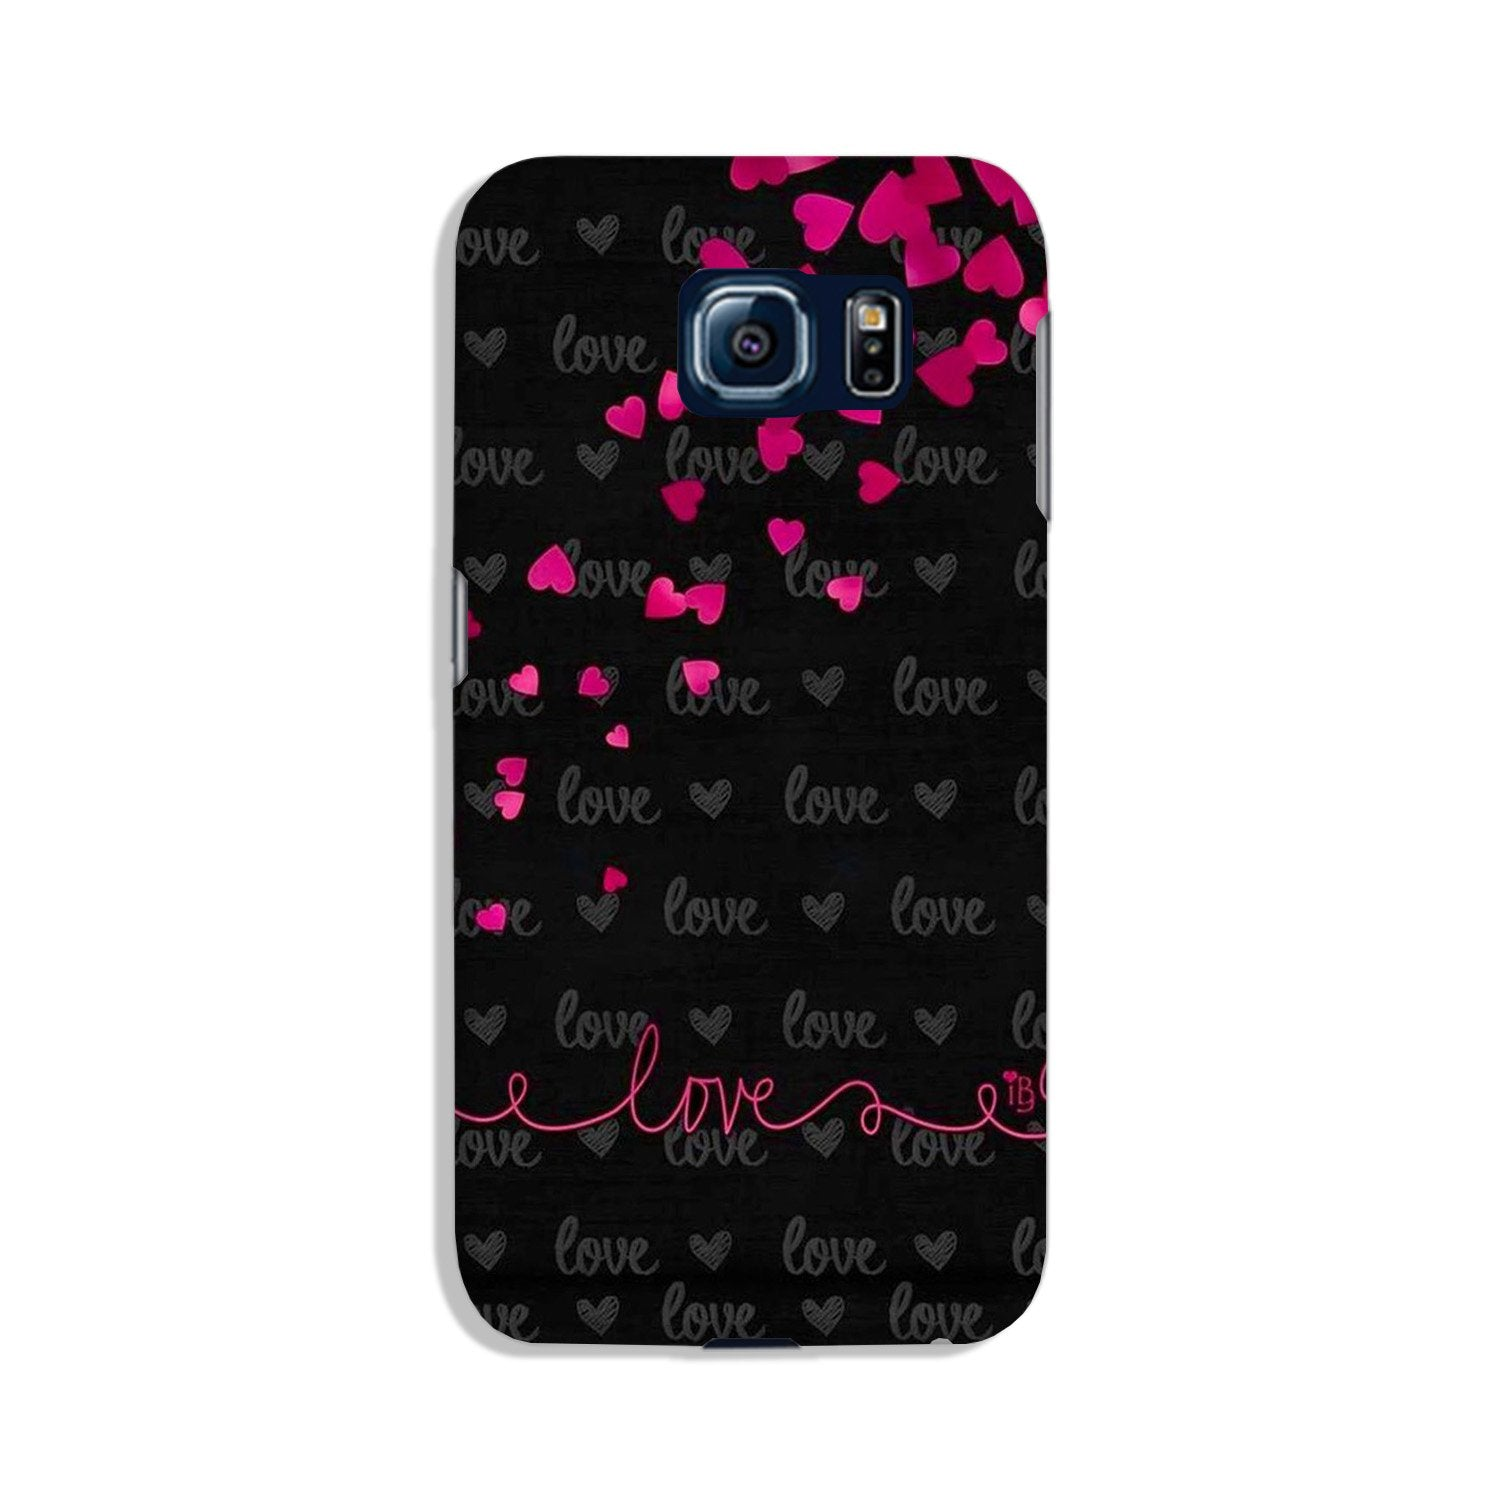 Love in Air Case for Galaxy S6